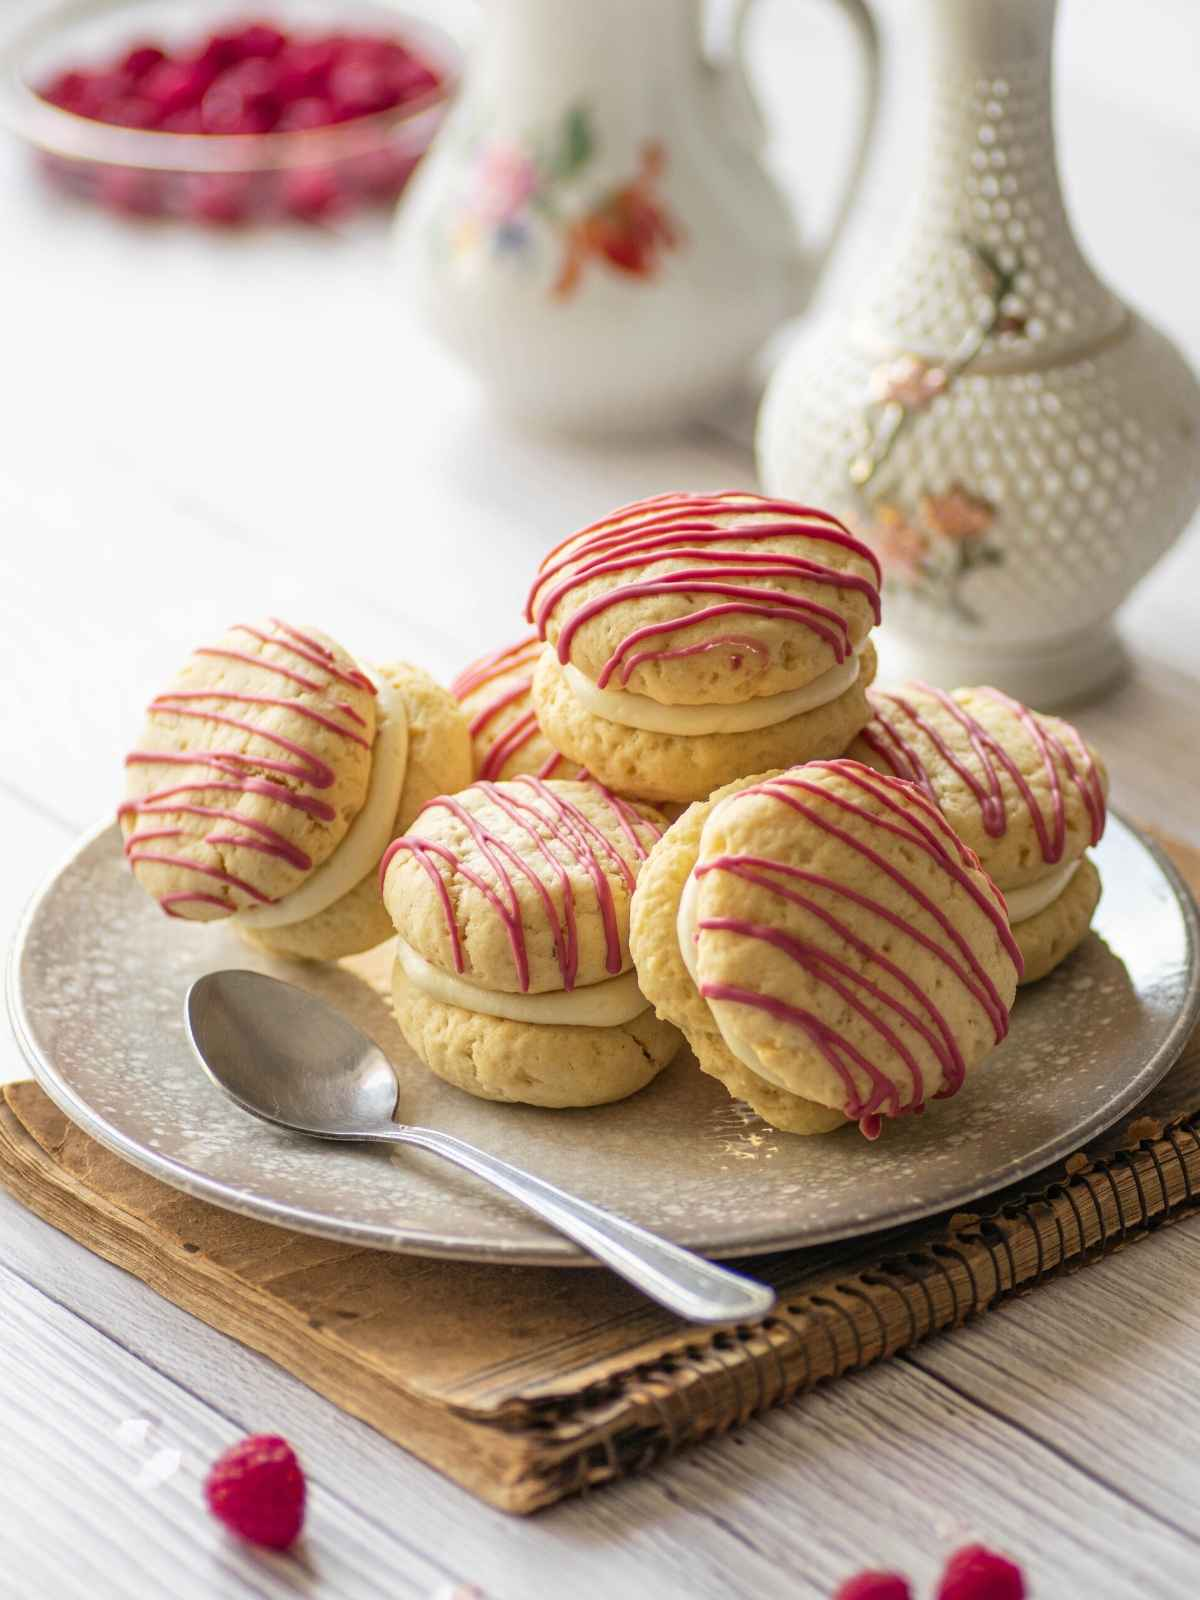 Raspberry cheesecake cookies stacked on top of each other